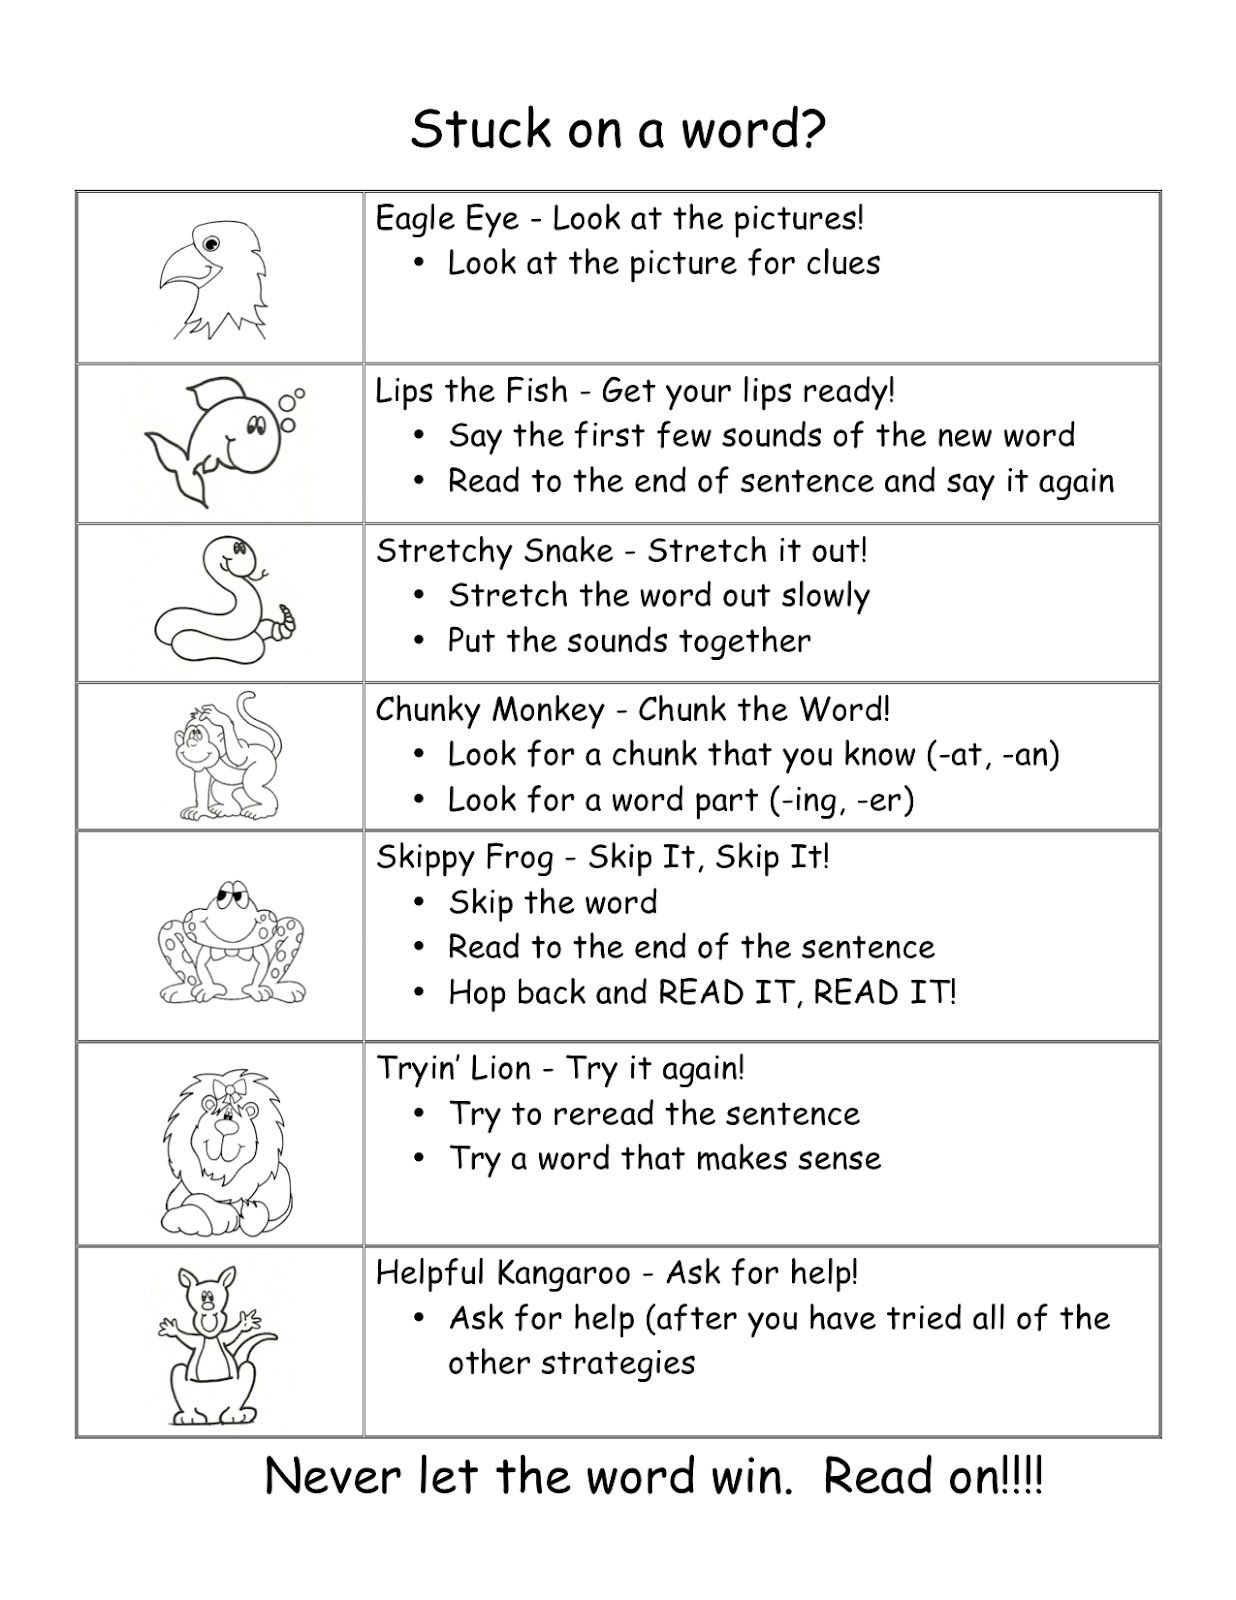 Worksheets Decoding Multisyllabic Words Worksheets student these worksheet puts in printable two animal worksheets words pdf habitat to the together